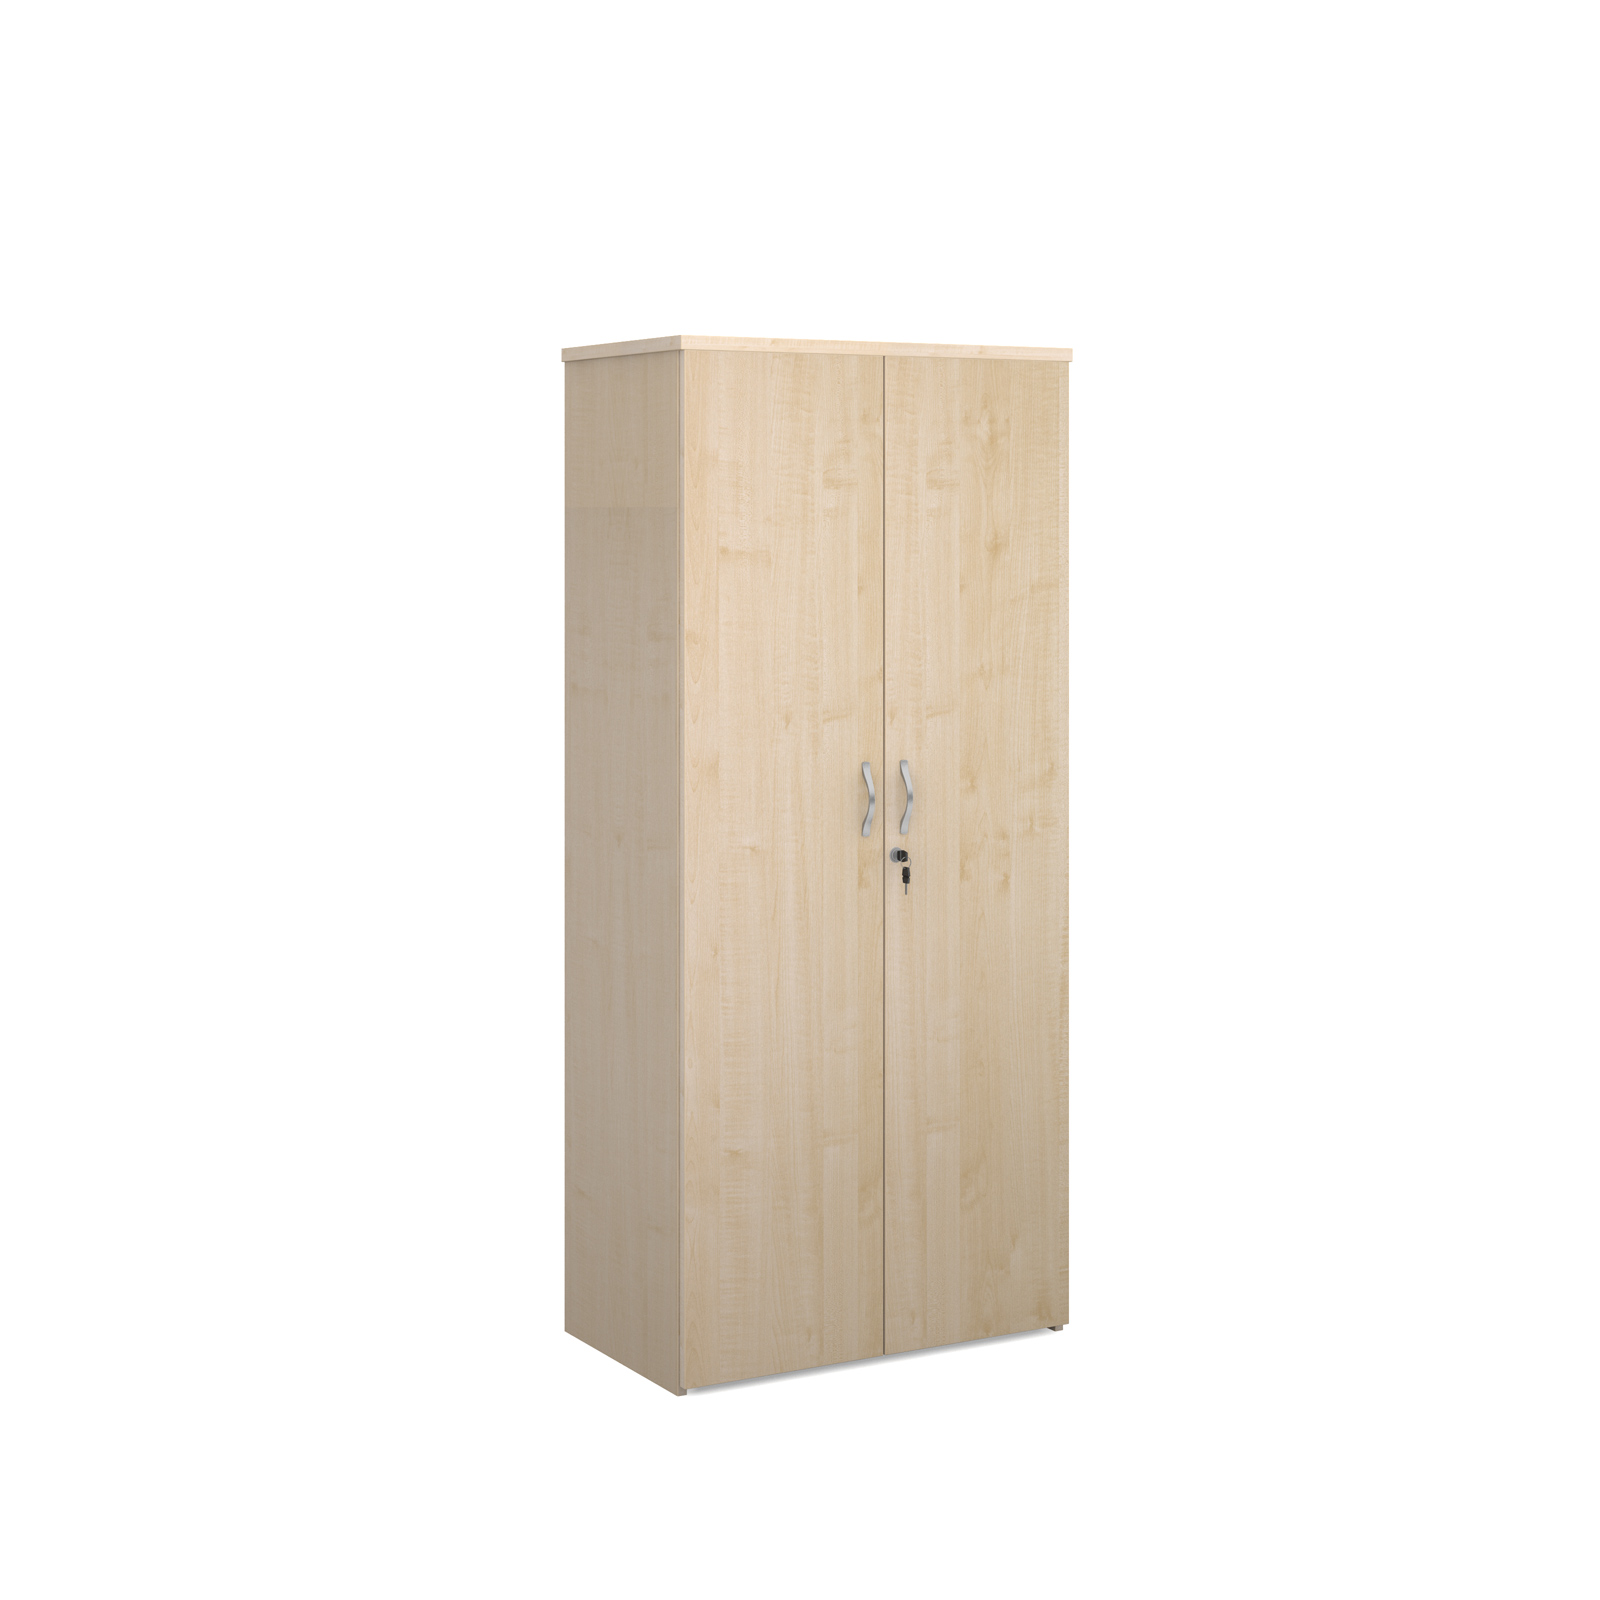 Over 1200mm High Universal double door cupboard 1790mm high with 4 shelves - maple